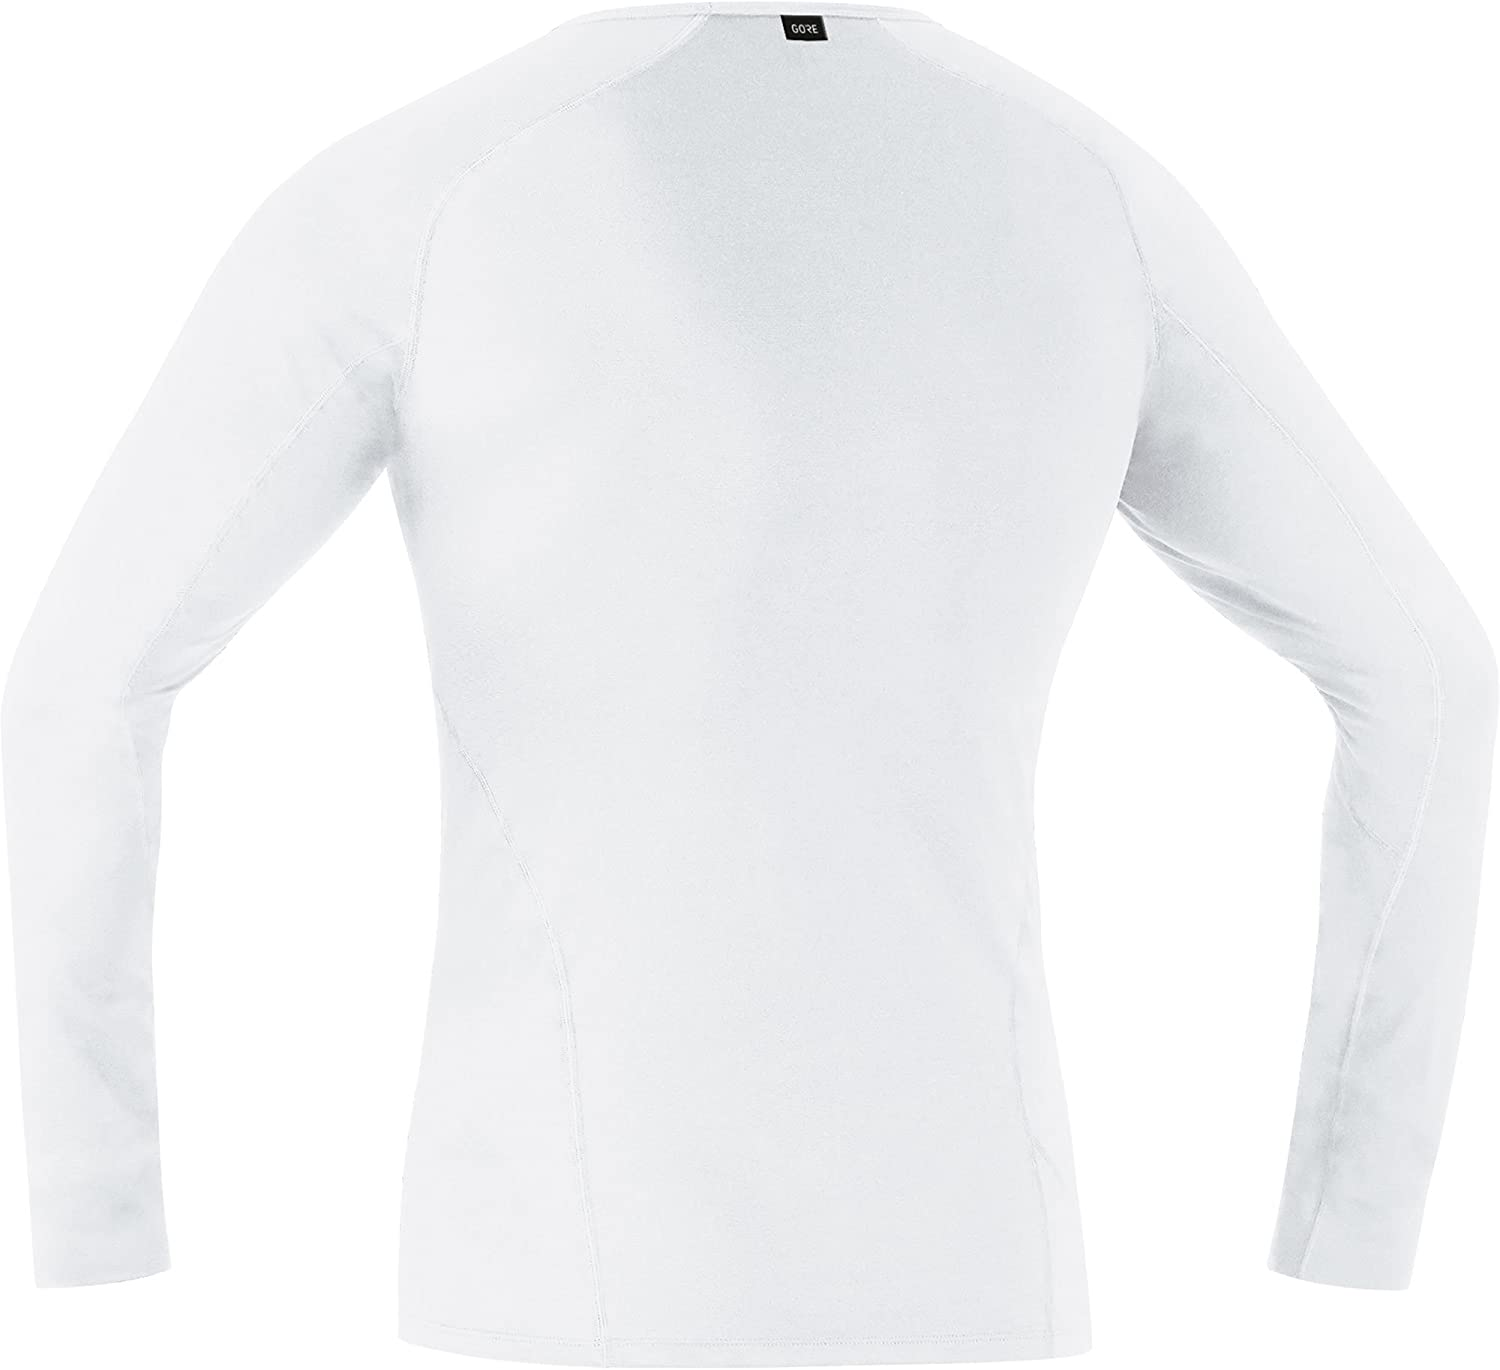 GORE WEAR Breathable Mens Thermal Inner Layer Shirt